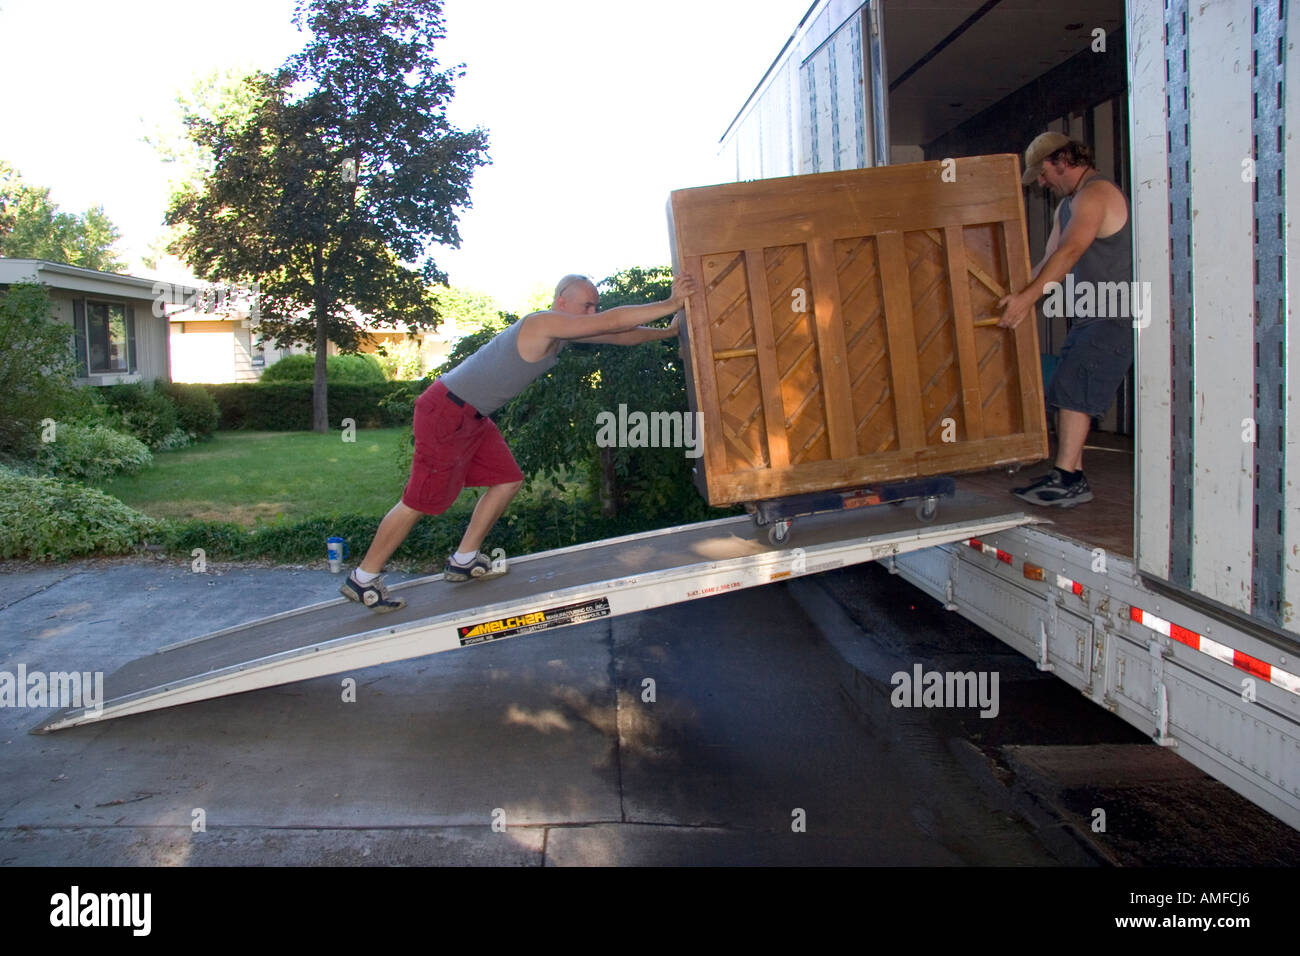 [Image: movers-push-a-piano-up-a-ramp-into-the-m...AMFCJ6.jpg]